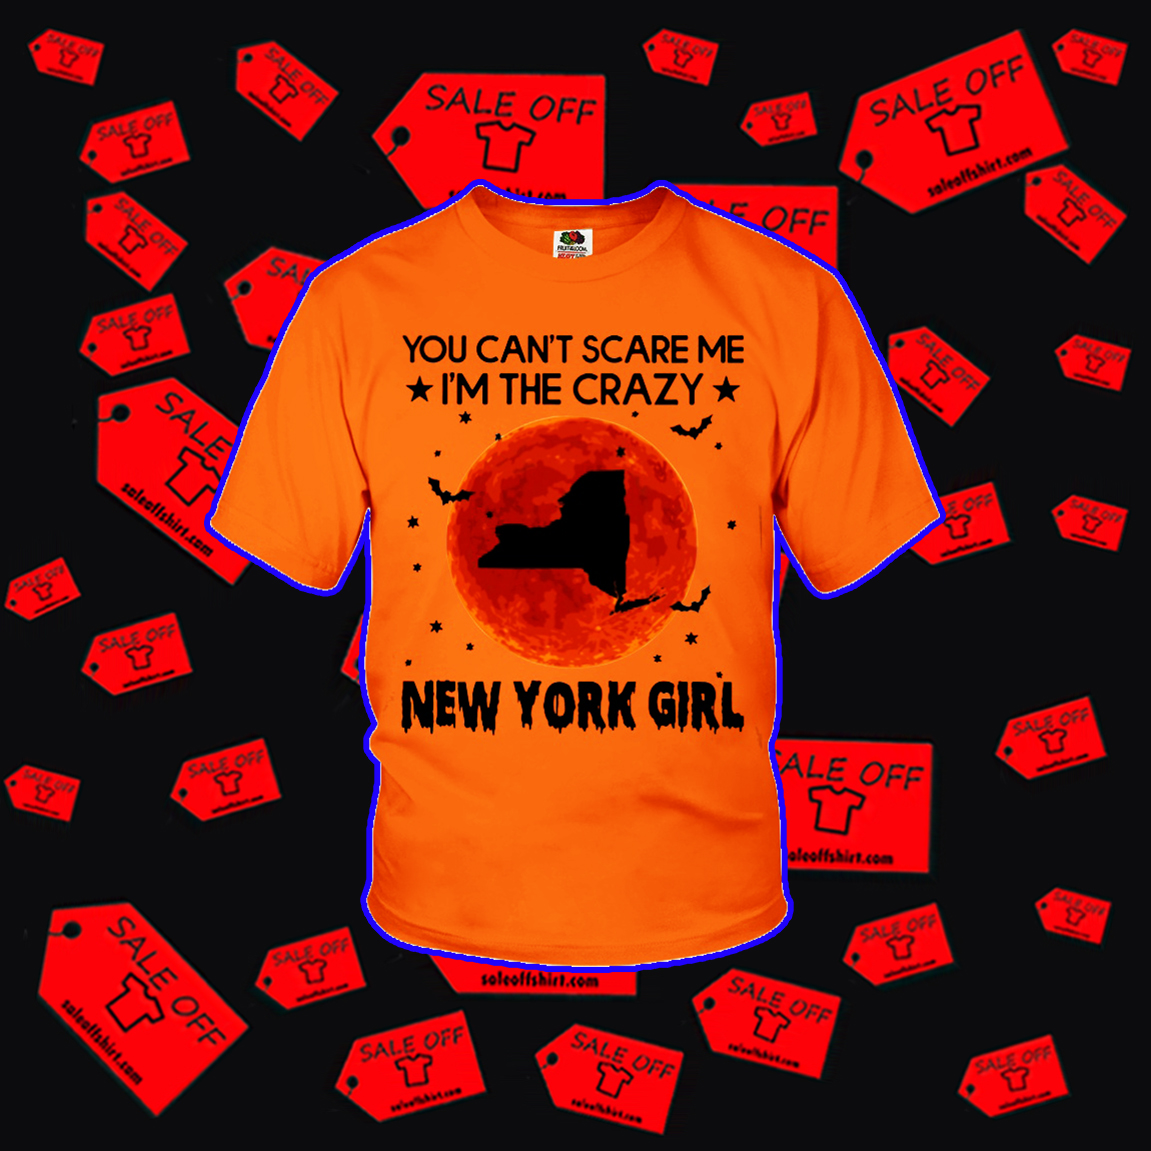 You can't scare me I'm the crazy New York girl youth t-shirt